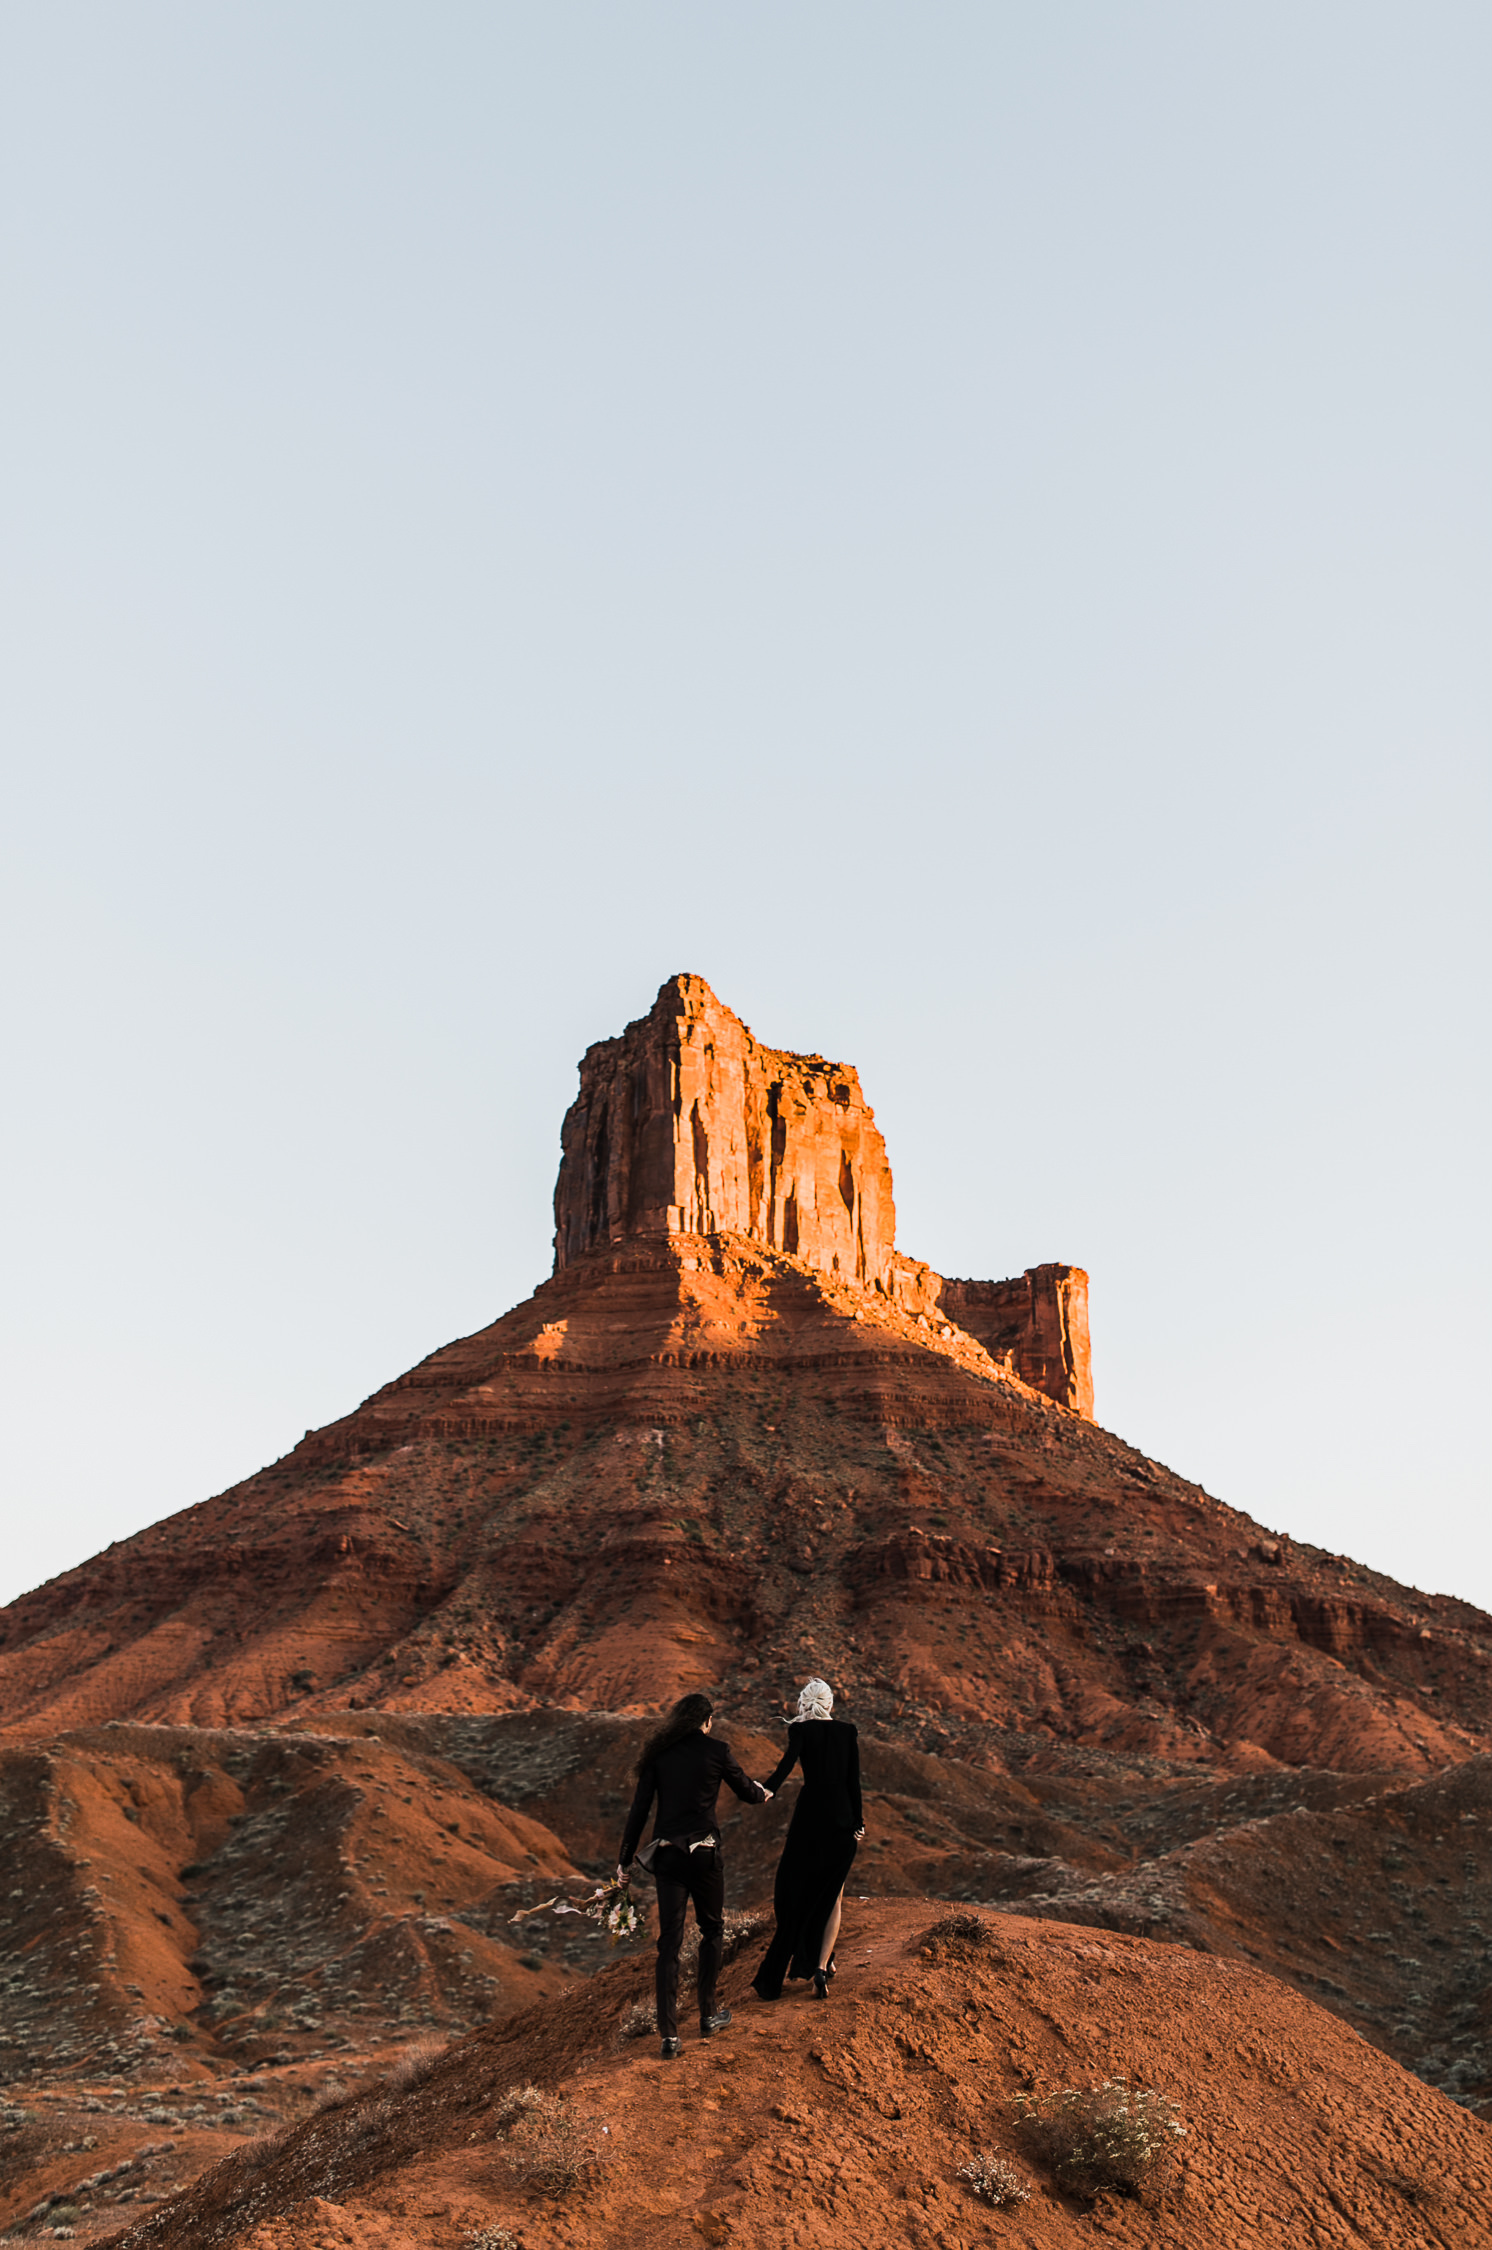 Black wedding dress inspiation for an elopement in Moab, Utah!